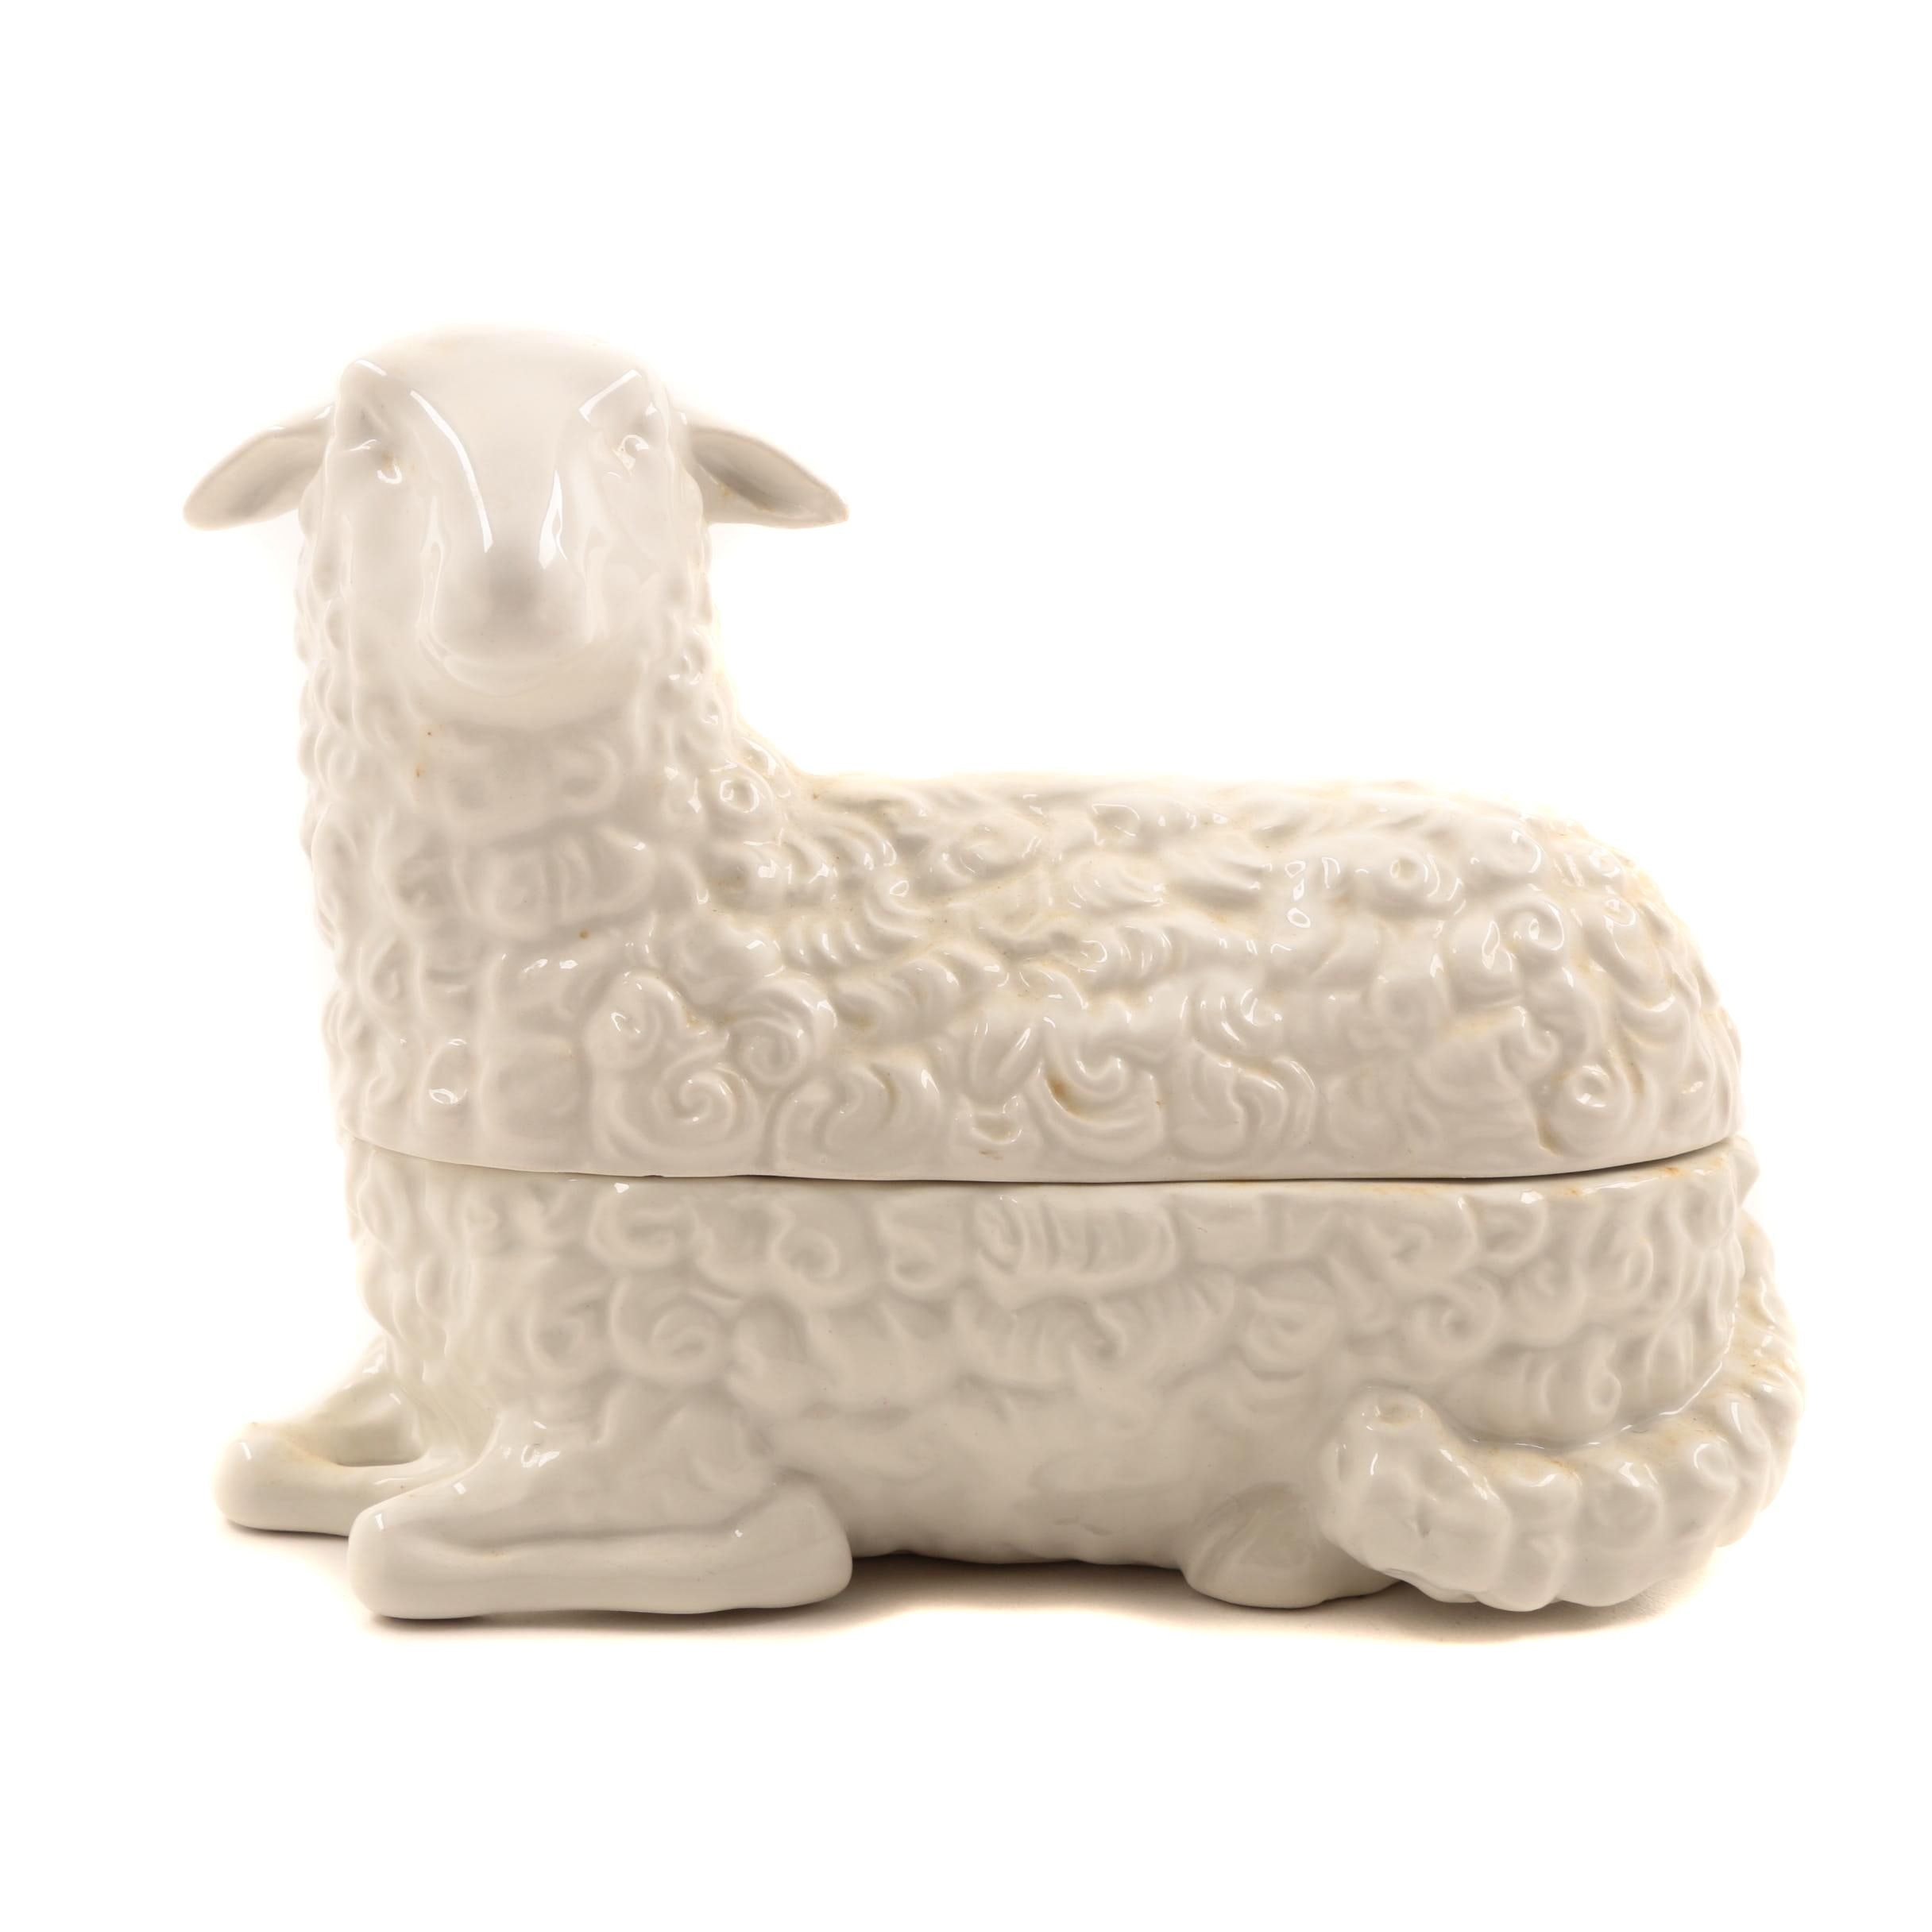 Italian MMA/UPM Porcelain Sheep Trinket Box